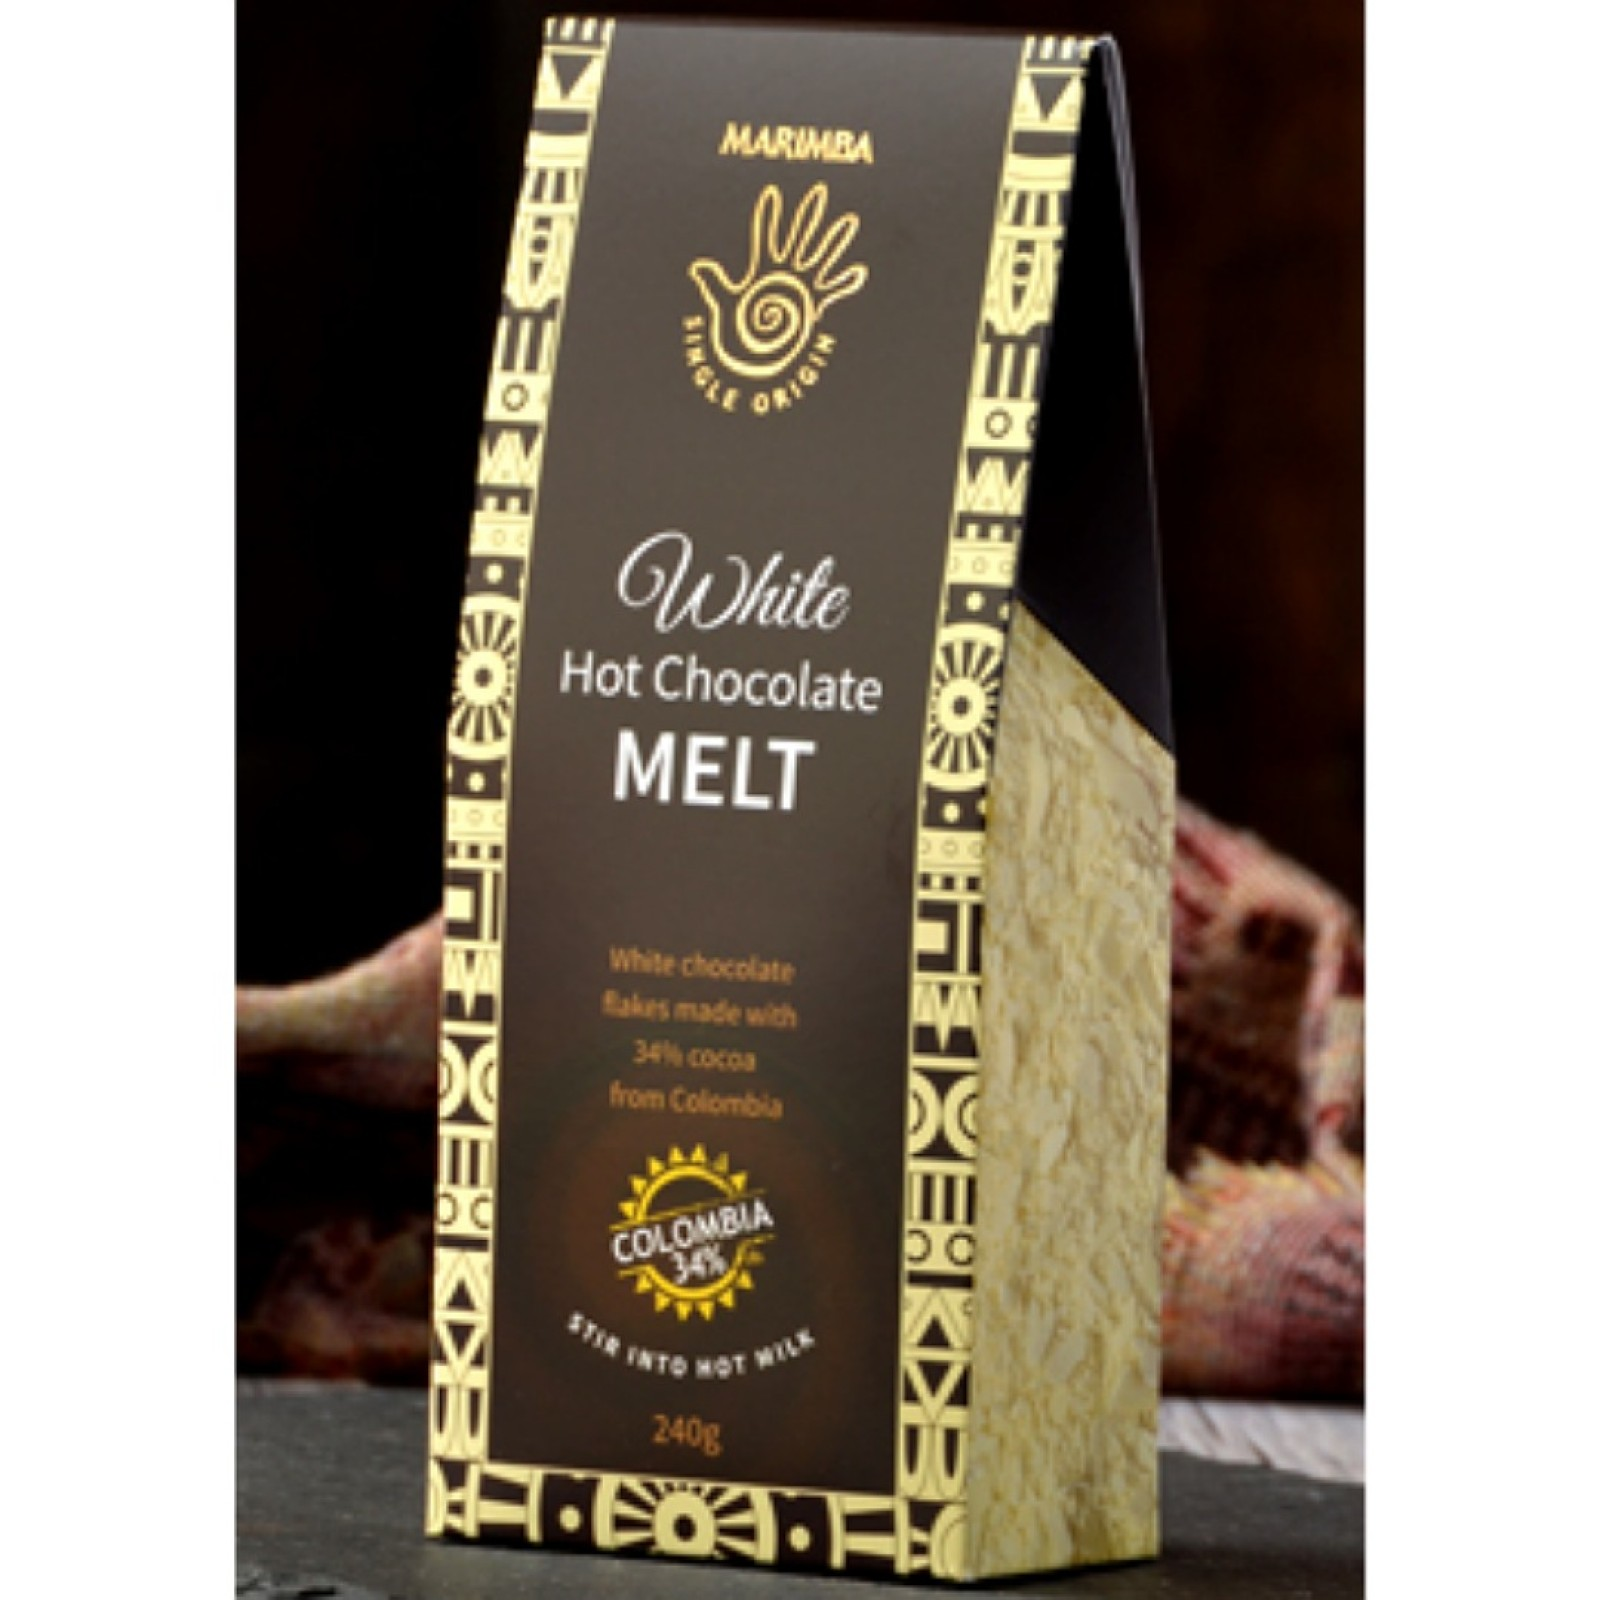 Colombia White 34% Hot Chocolate Melt carton - 240g